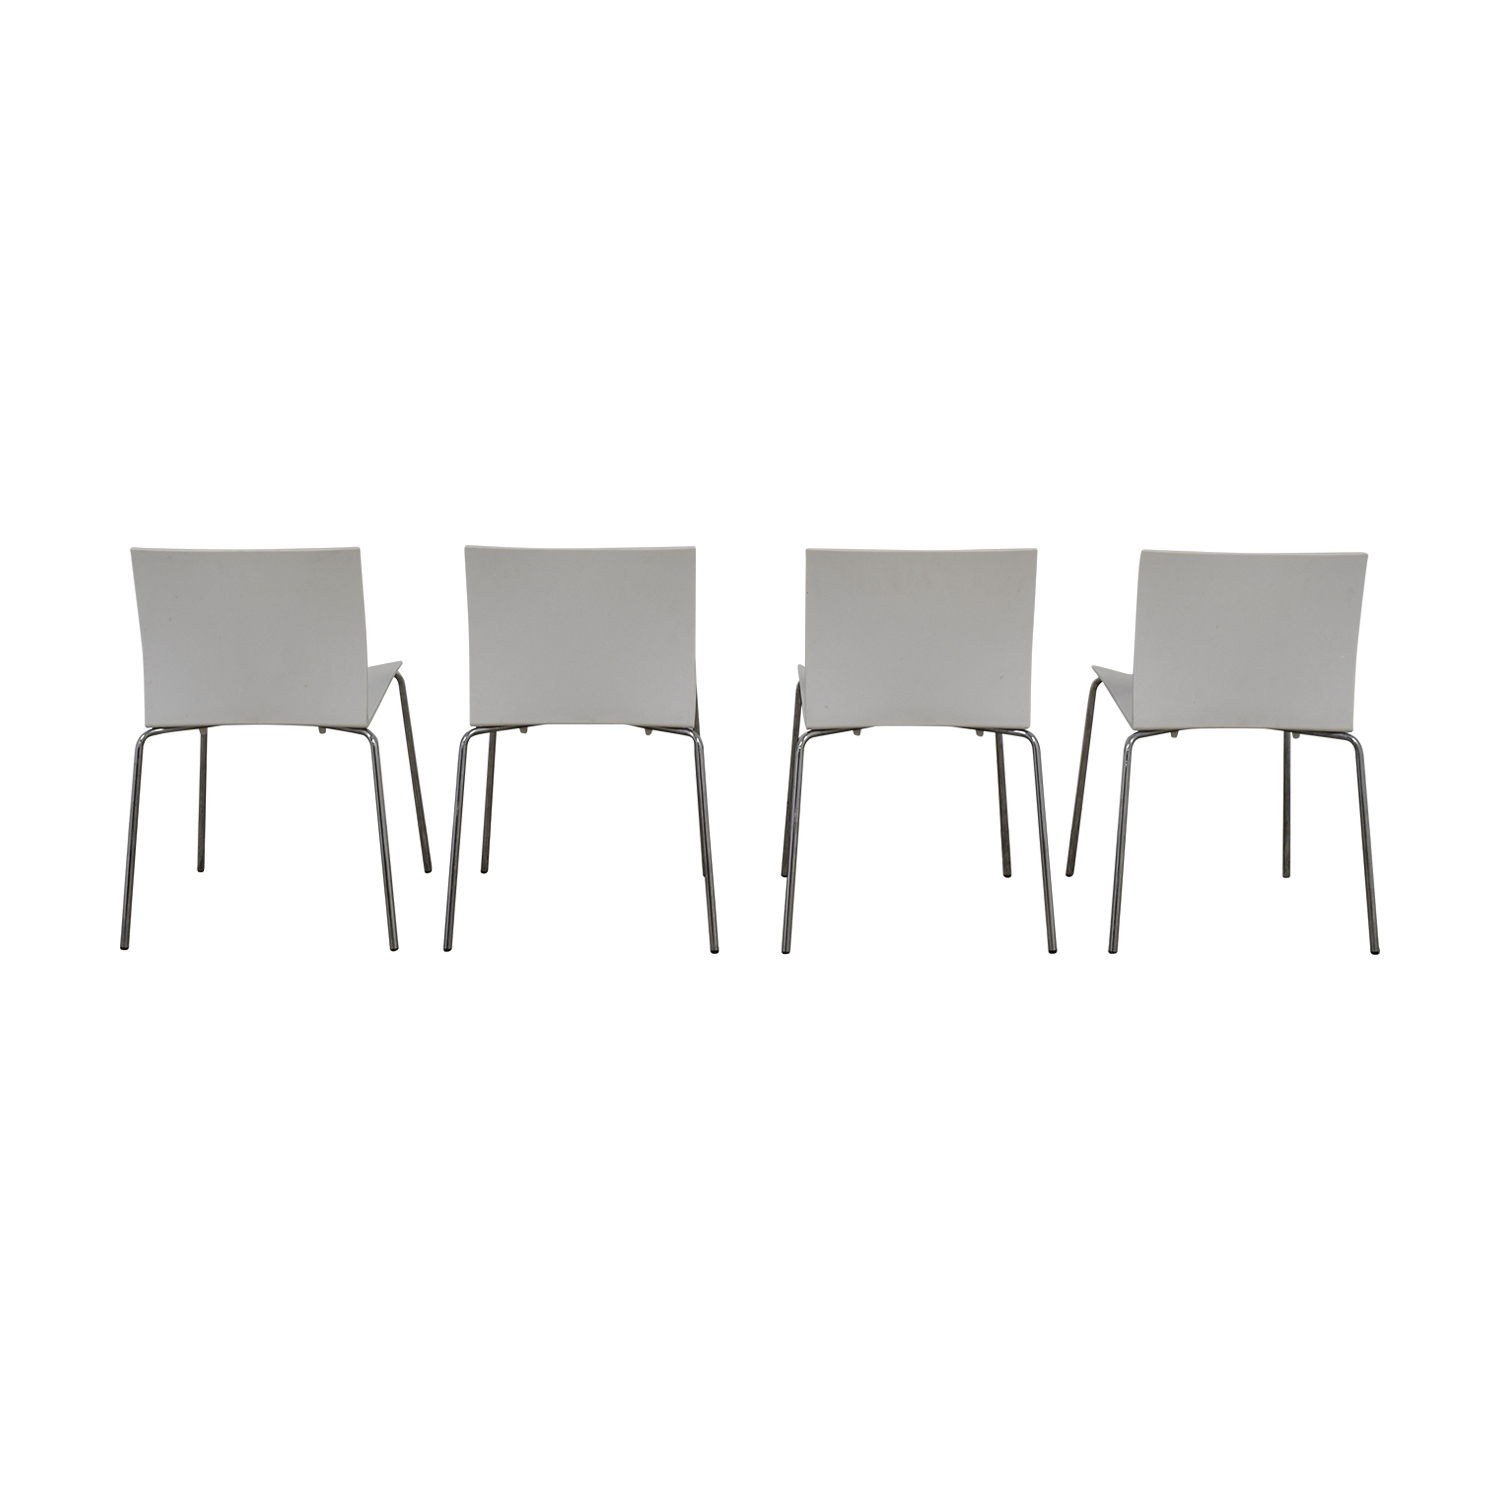 CB2 CB2 Slim White Chairs Dining Chairs